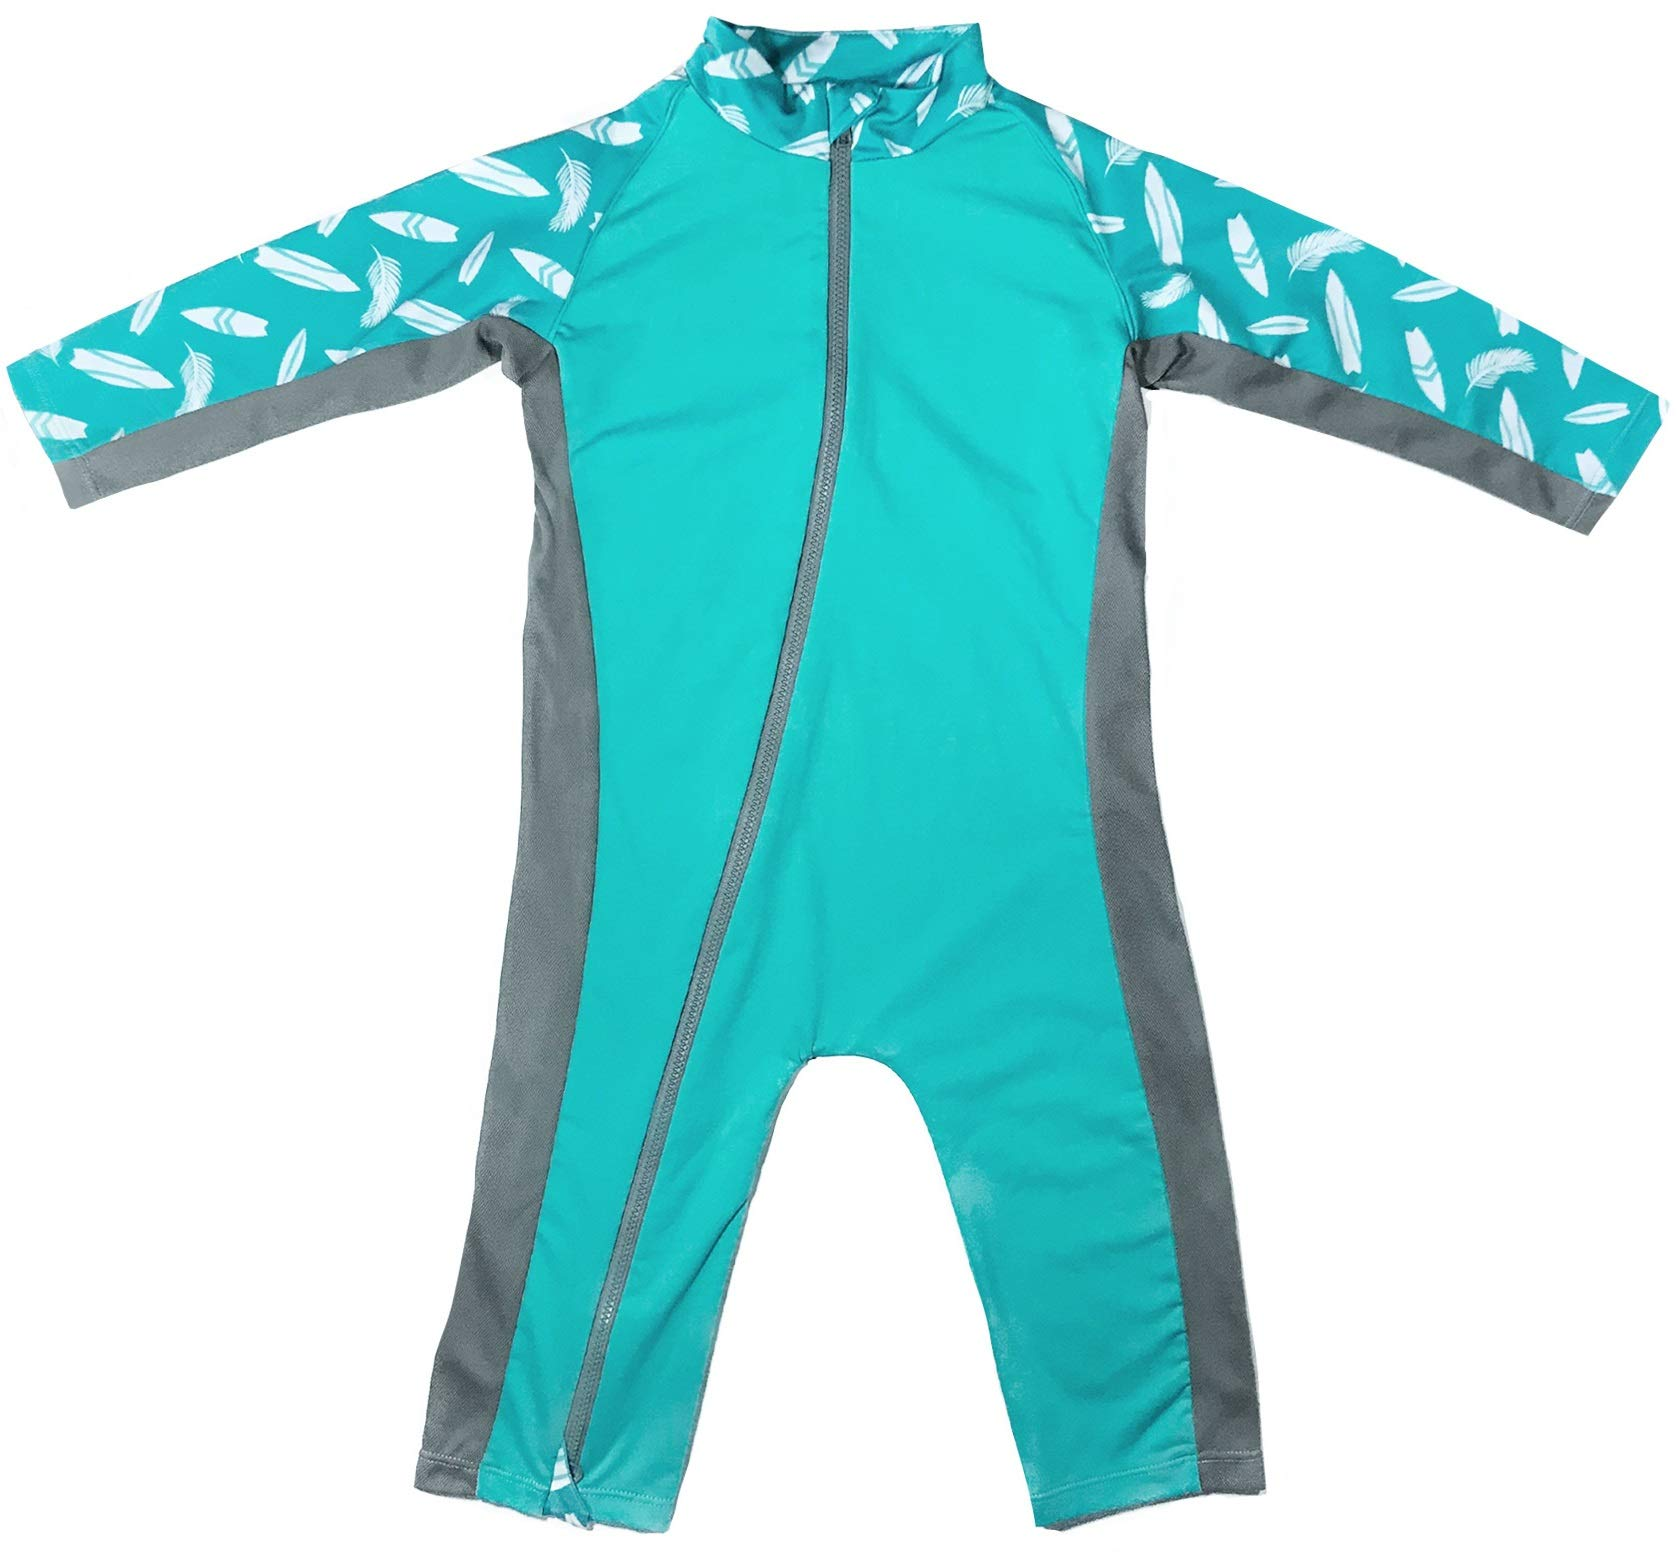 Stonz Premium Rash Guard Rashguard Sun Suit for Active Baby Boy Girl Long Sleeve UPF 50+ Swim Suit Top Sun Protection for Beach Pool Play, Teal Surf 12-18 Months by Stonz